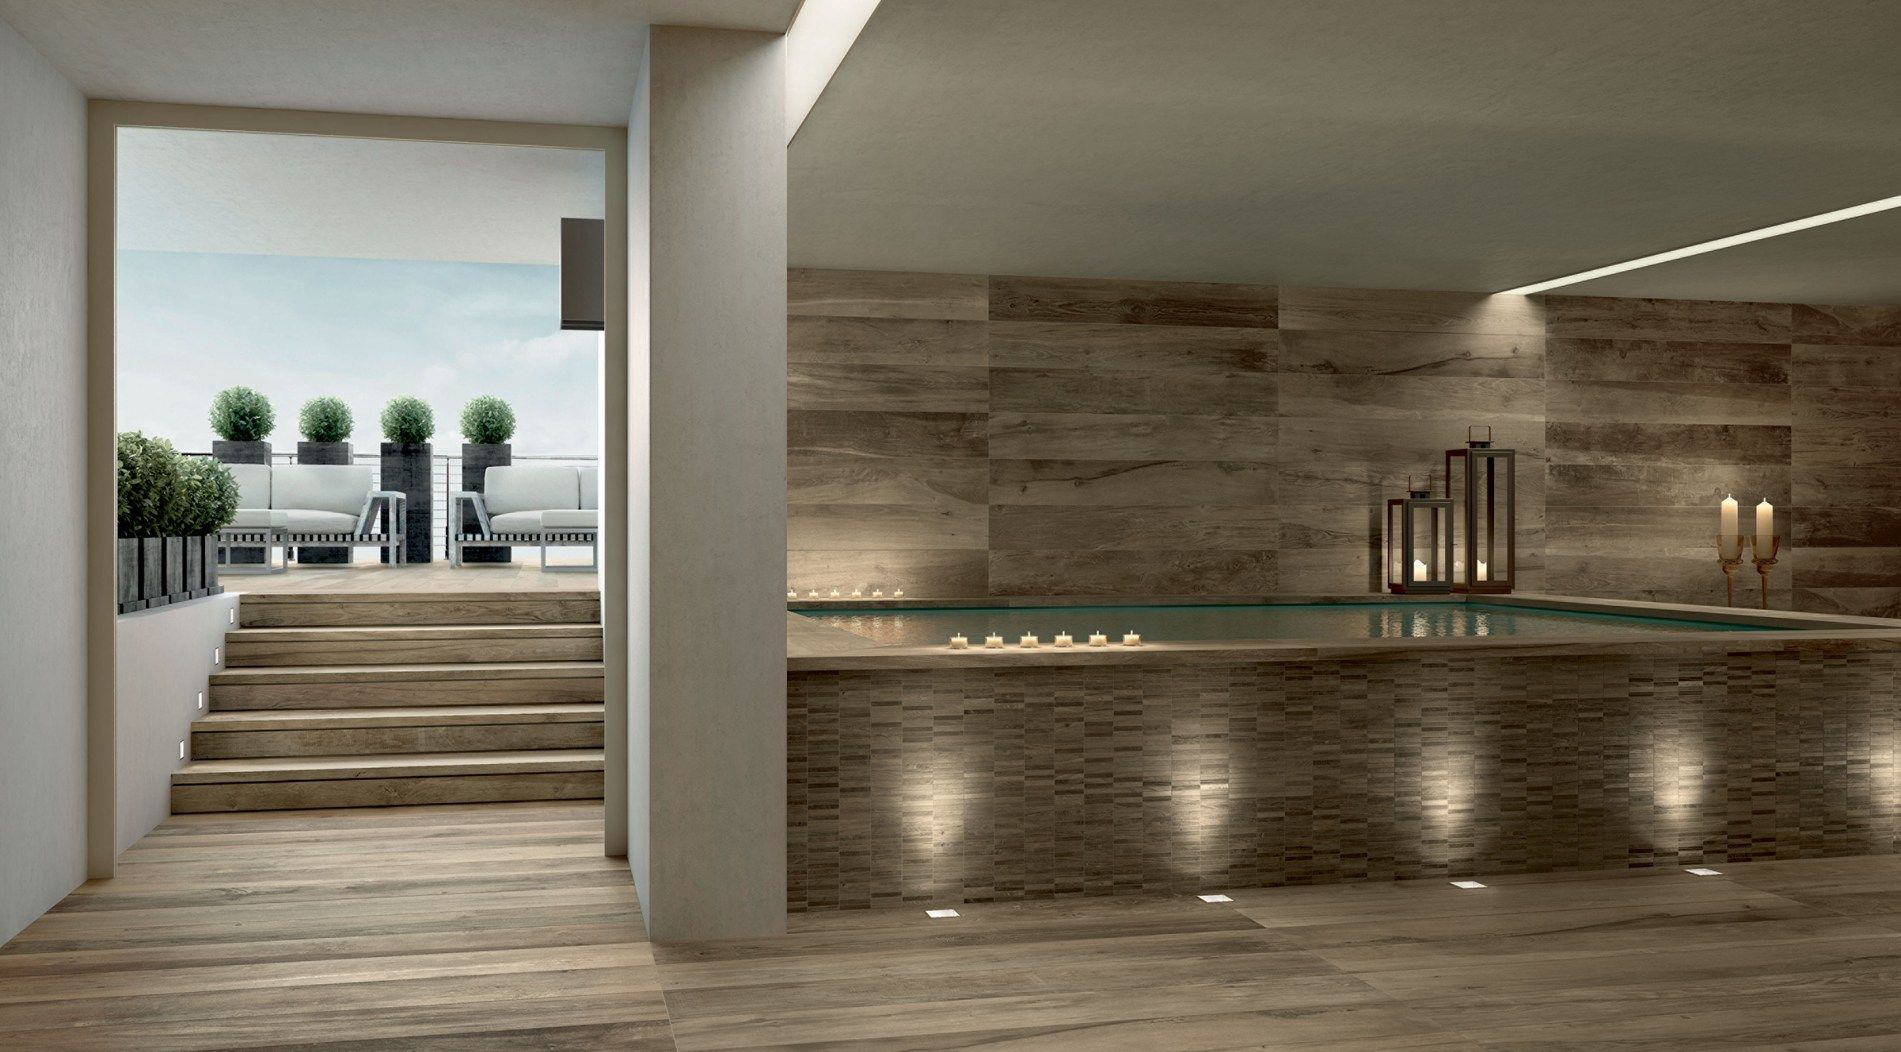 Ramacieri soligo presents the new collection woodside for Plancher exterieur